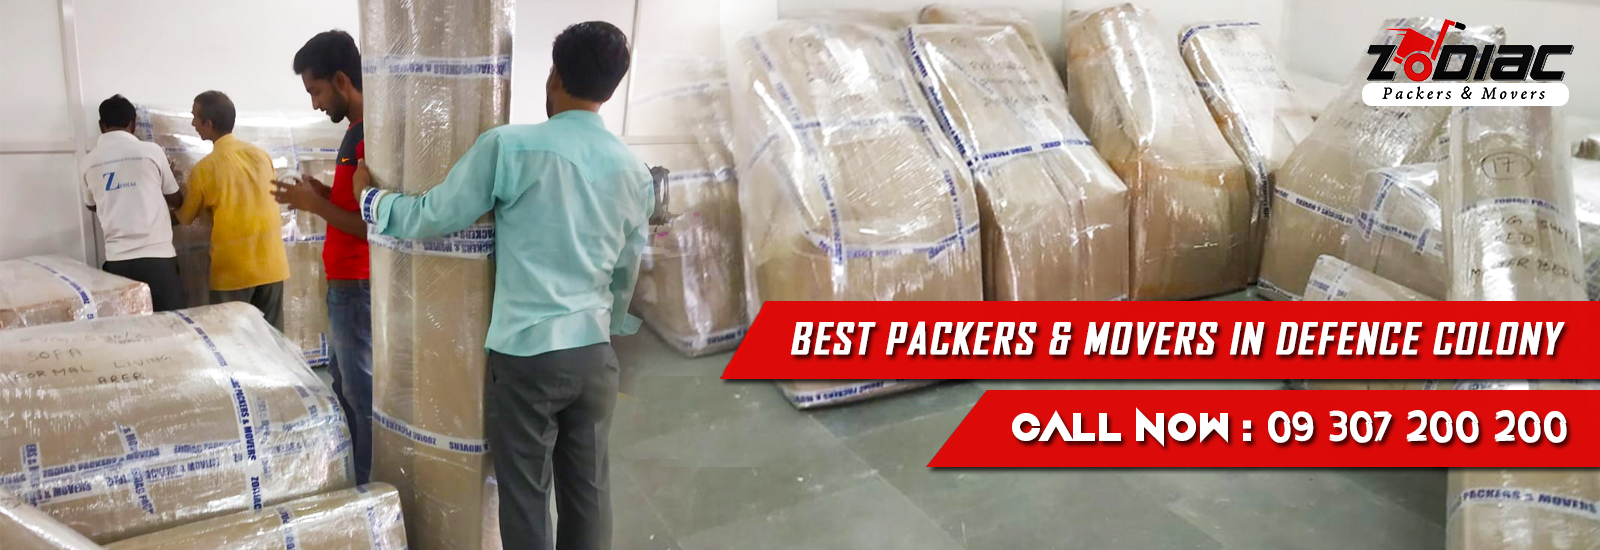 Packers and Movers in Defence Colony